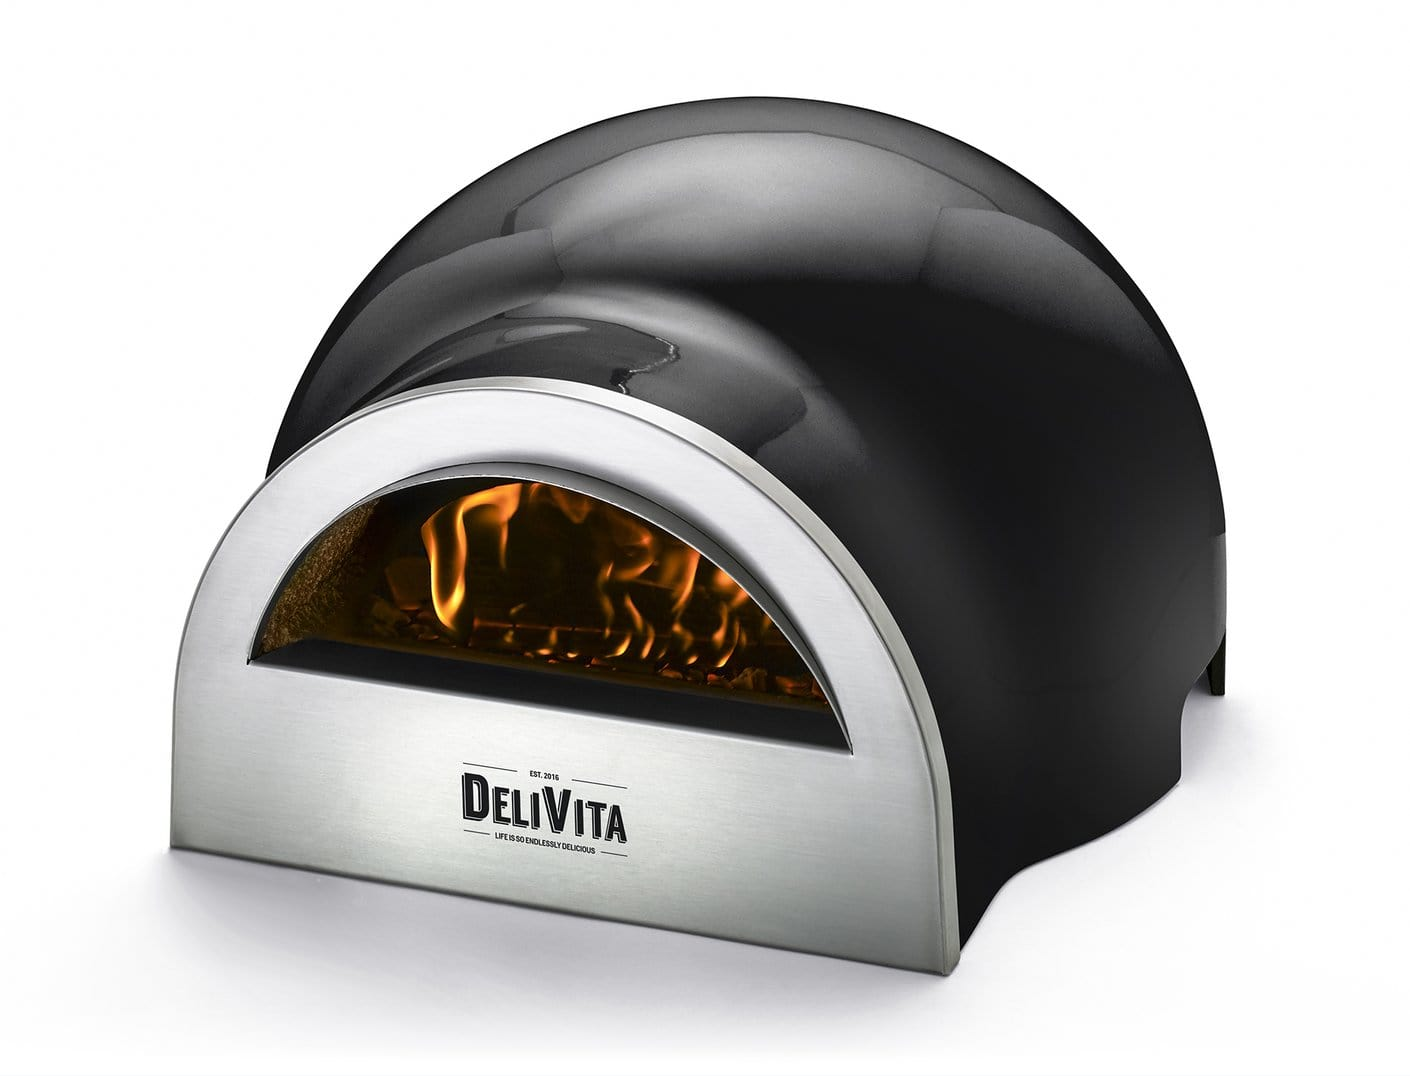 Delivita Wood Fired Oven